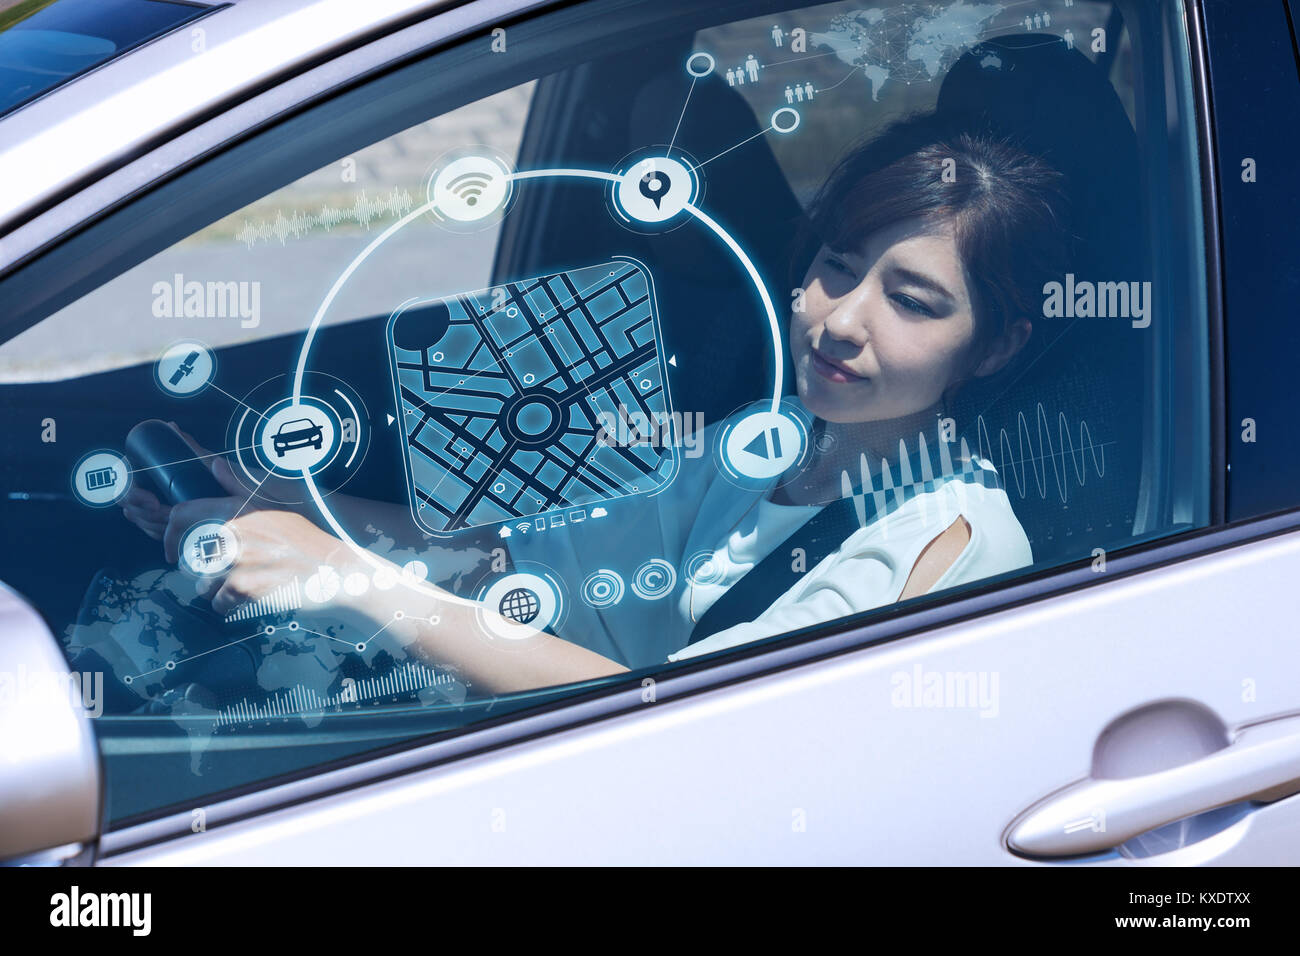 futuristic vehicle and graphical user interface(GUI). intelligent car. connected car. Internet of Things. Heads - Stock Image